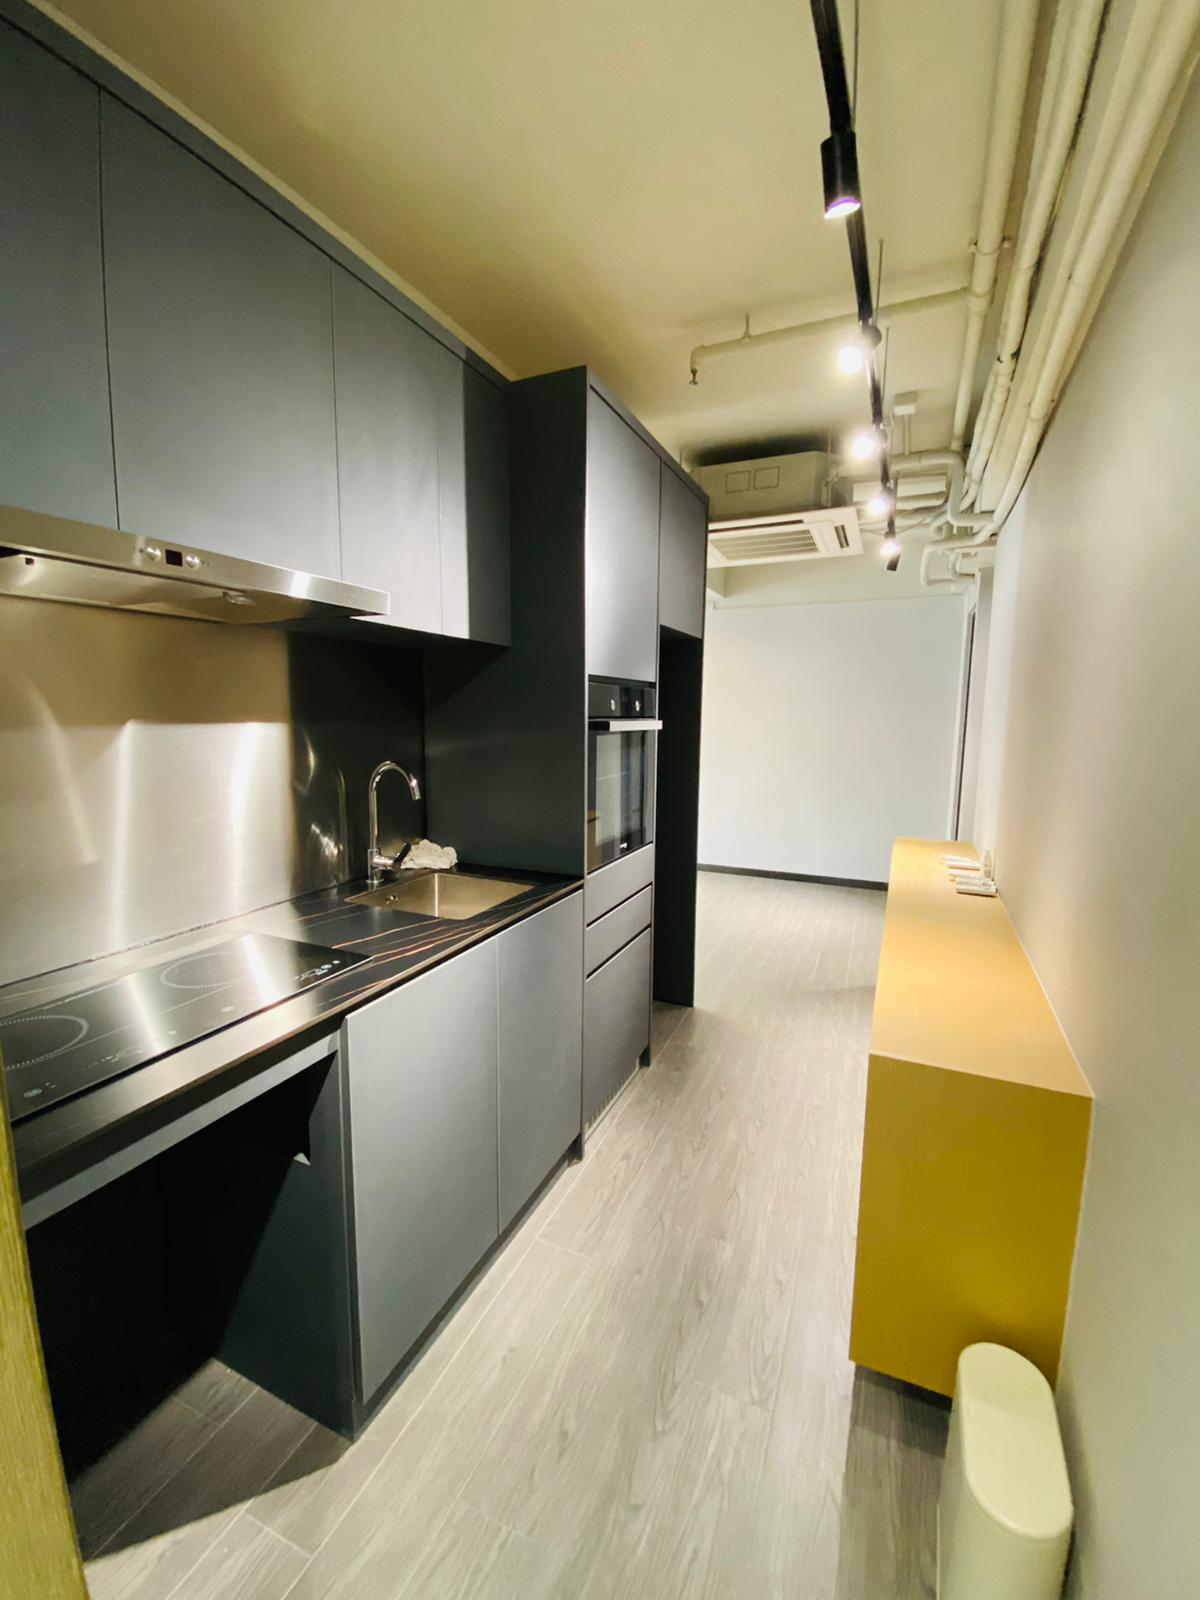 [Central] Glenealy Tower, Commercial and Residential Unit,  3 bedrooms +  toilet, Gross 1,100 sq.ft